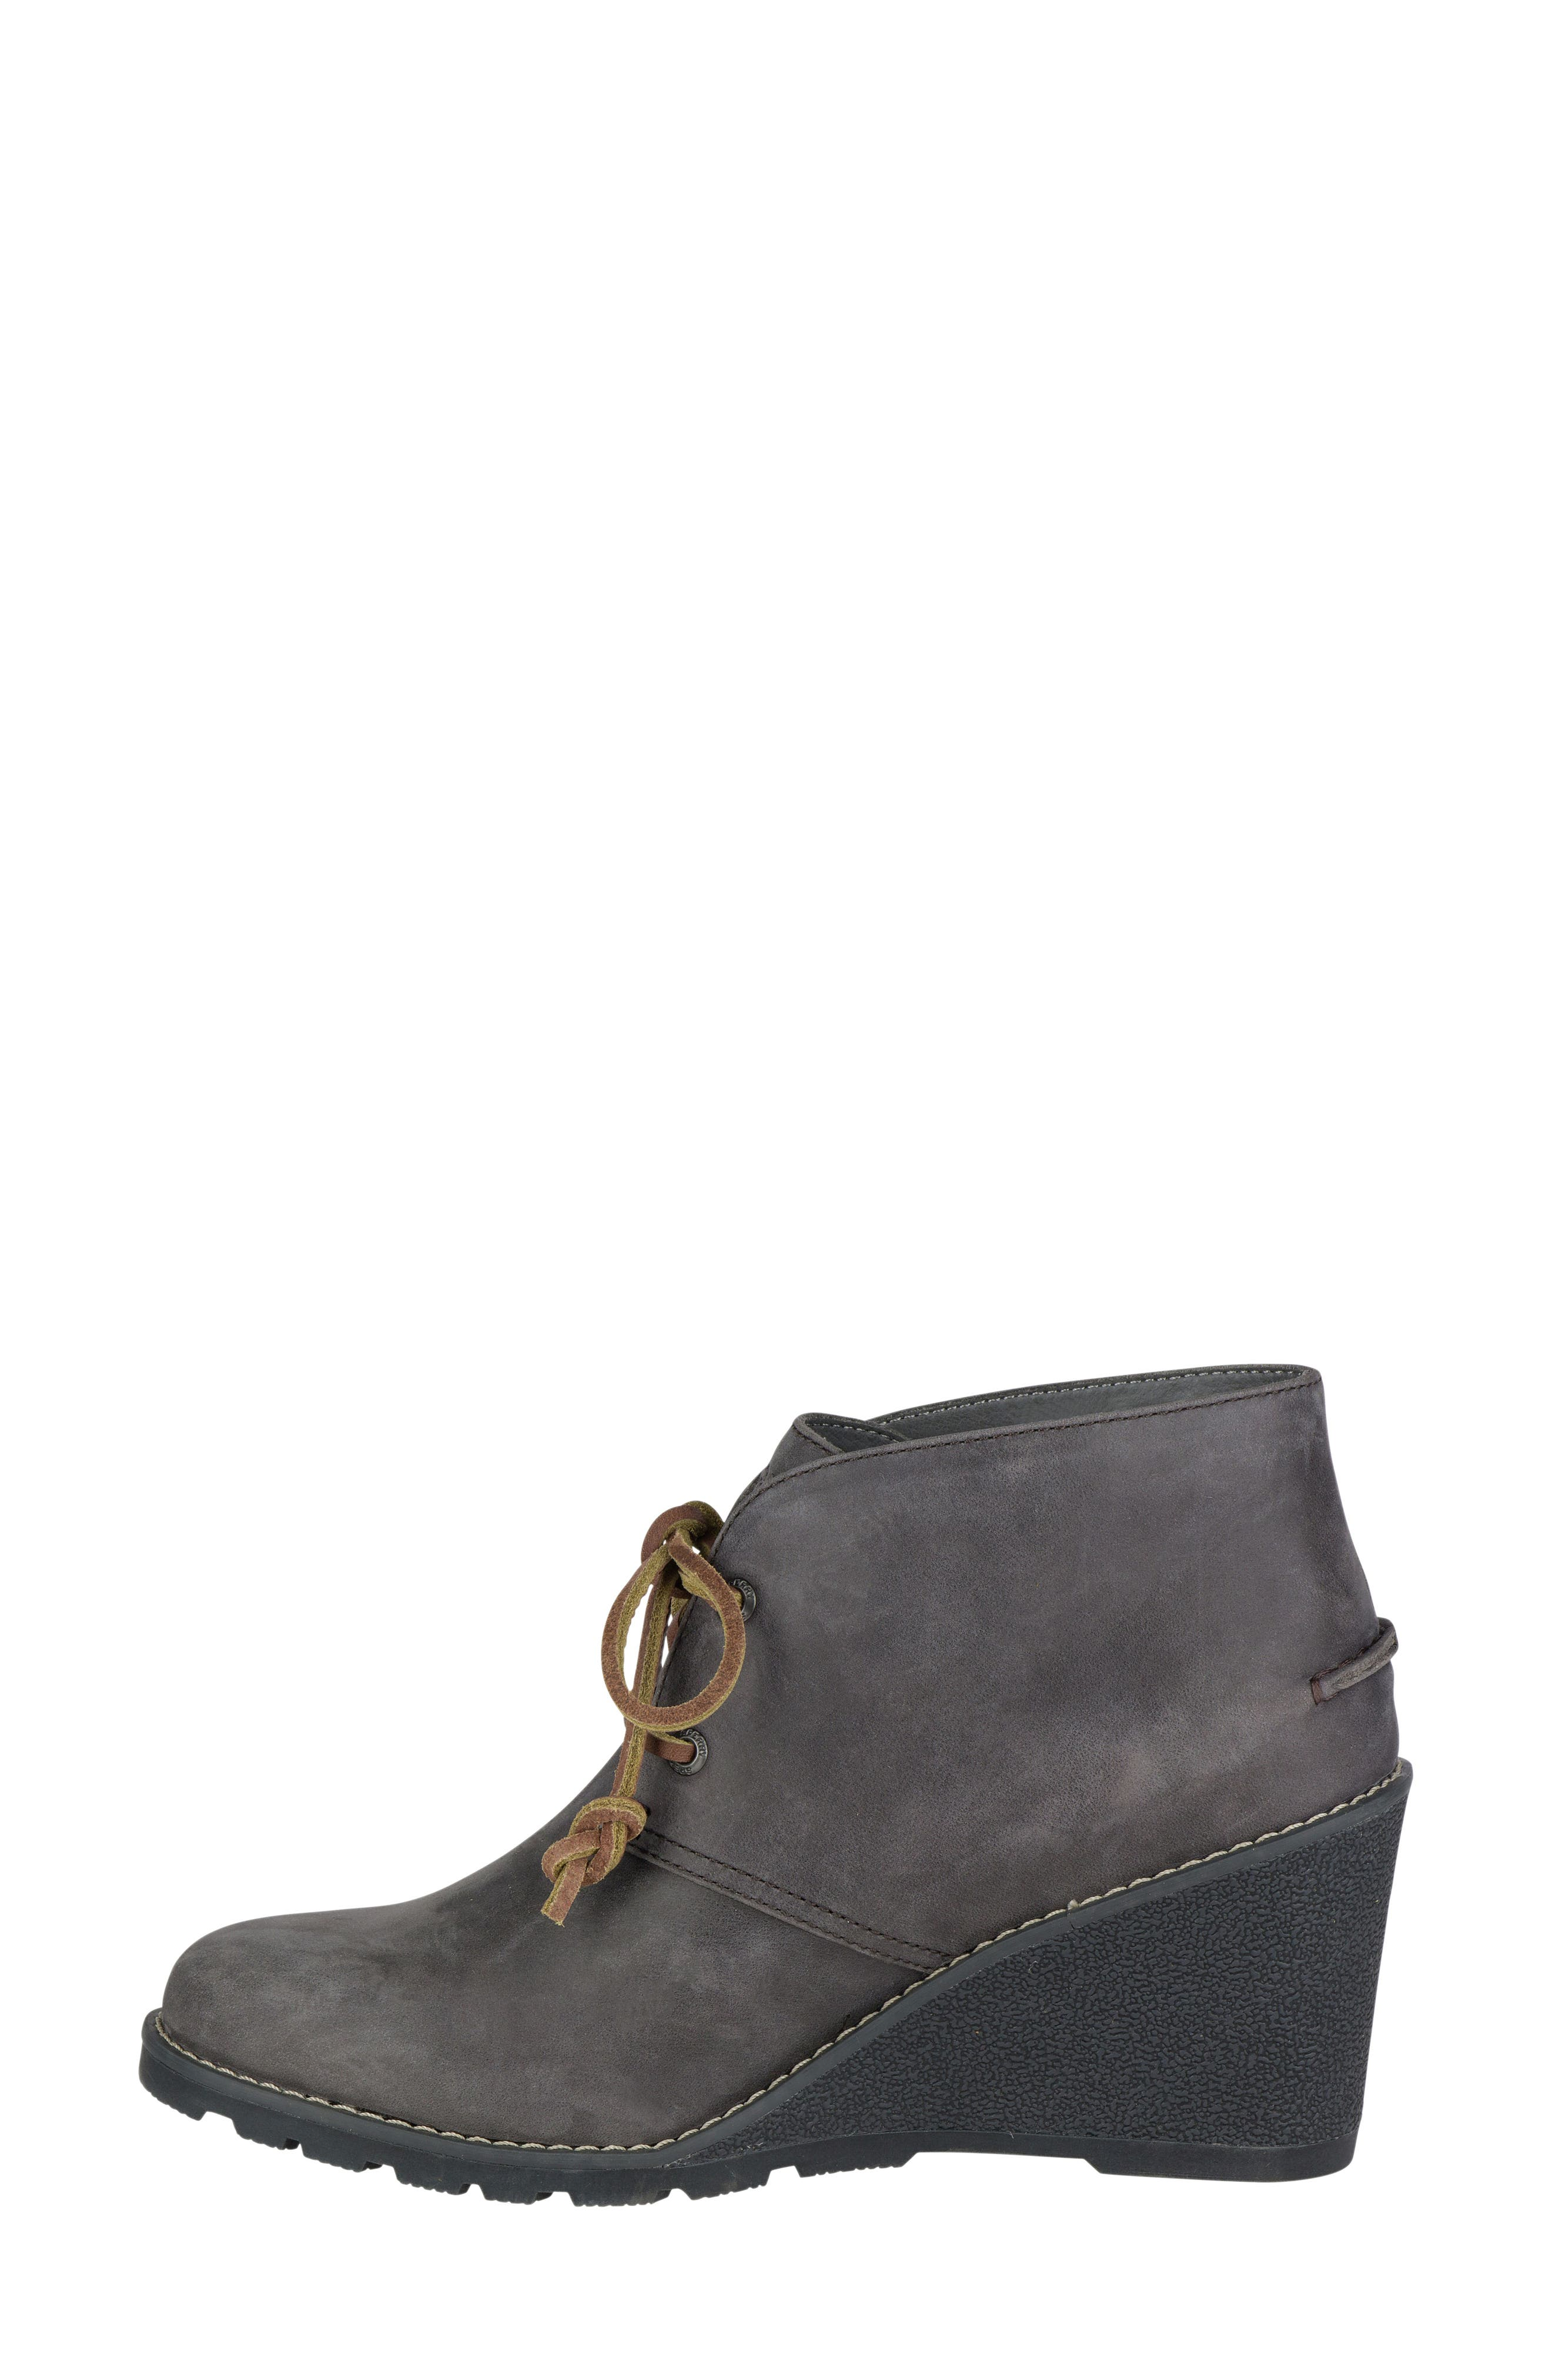 Alternate Image 3  - Sperry Celeste Lace-Up Bootie (Women)